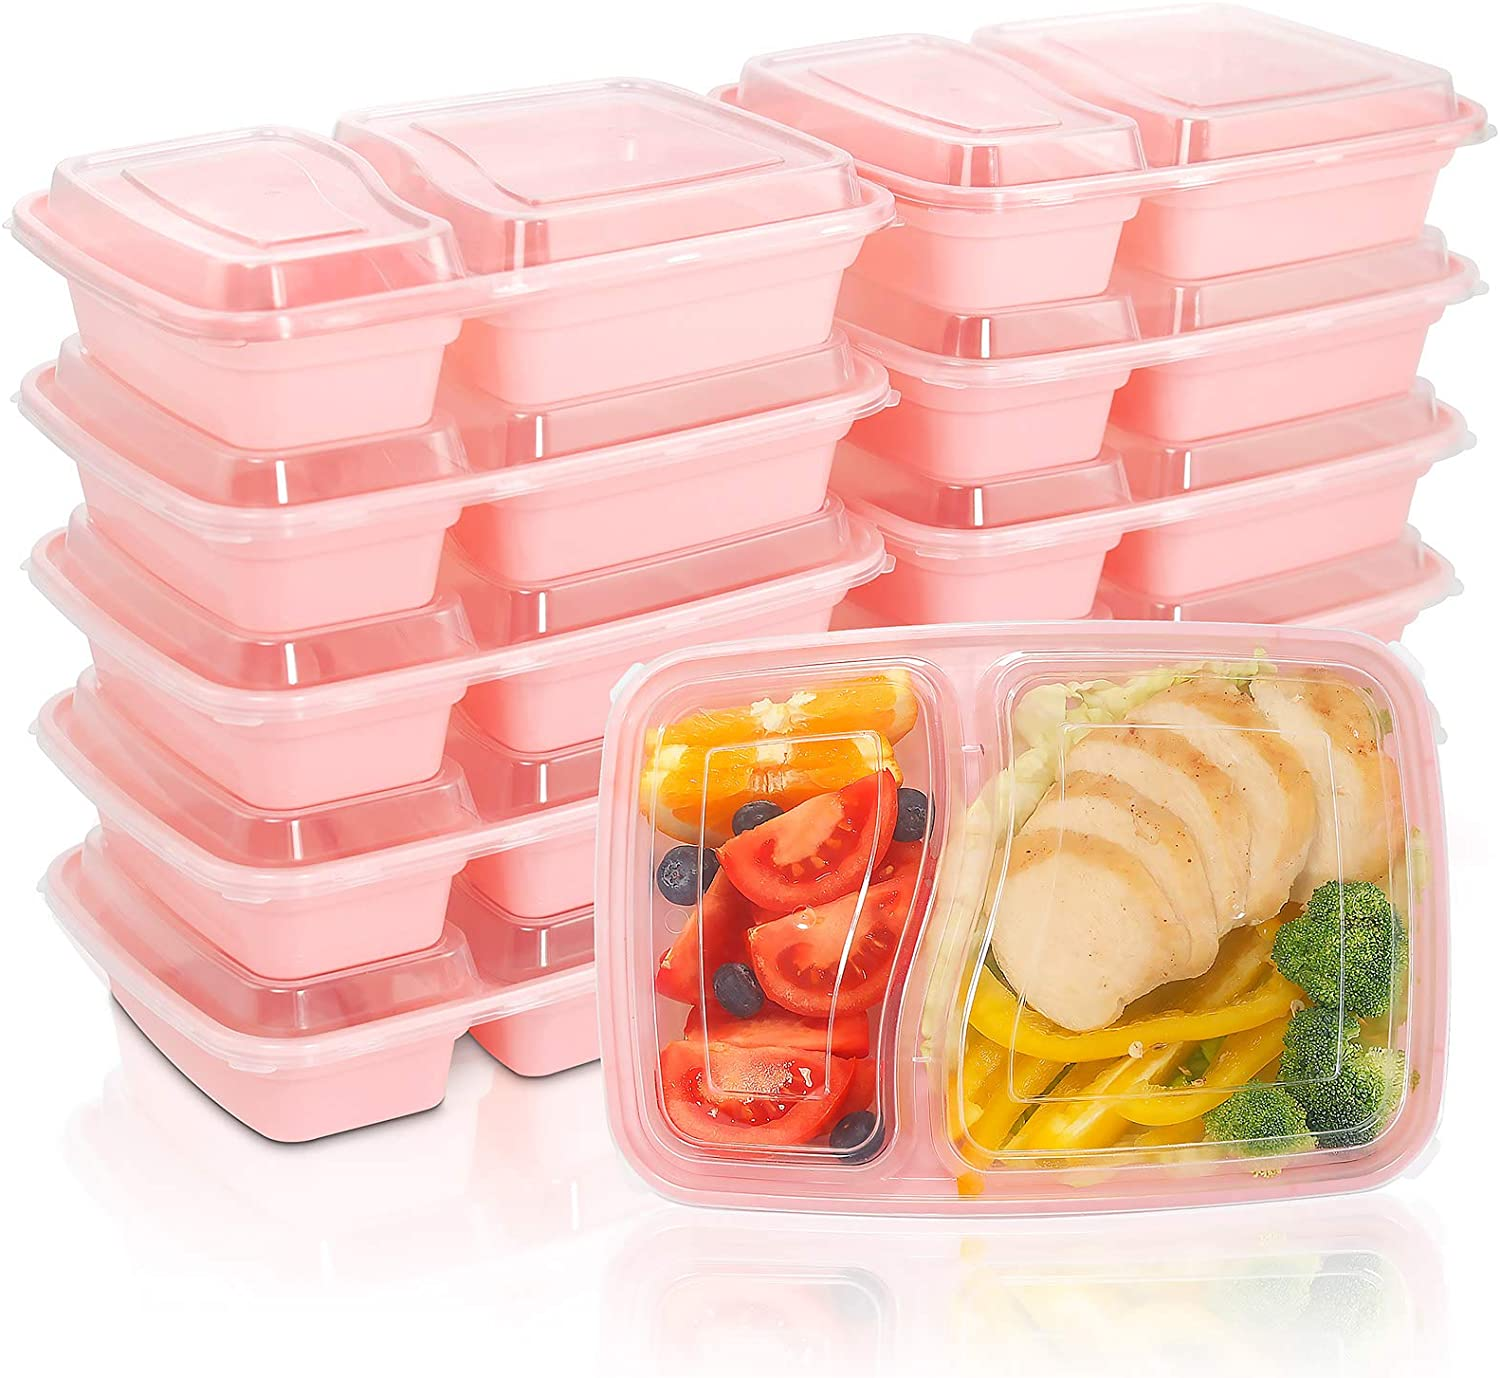 WELLIFE 60 Pack 28 OZ Meal Prep Containers 2 Compartment with Airtight Lids - Plastic Food Storage Pink Boxes - BPA Free - Plastic Reusable Boxes- Bento Boxes -Microwaveable, Freezer & Dishwasher Safe